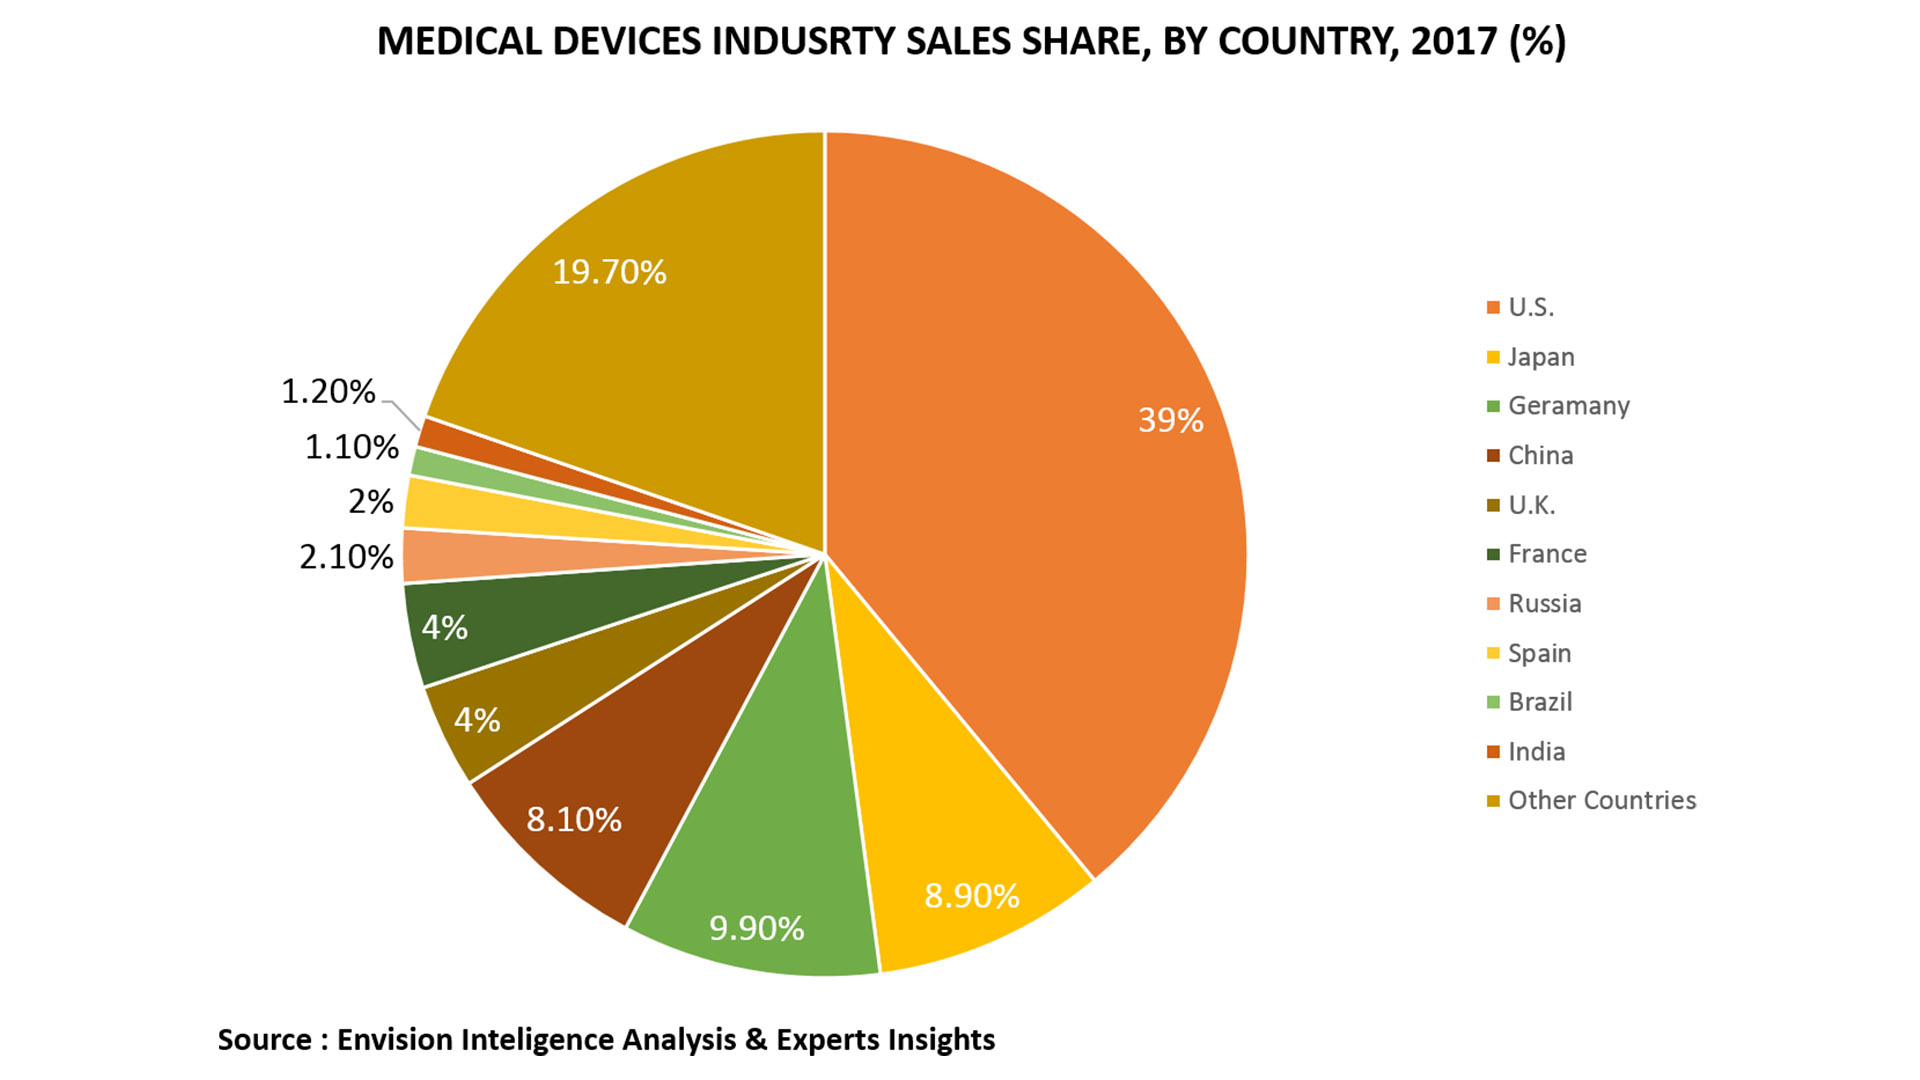 MEDICAL DEVICES MARKET SALES